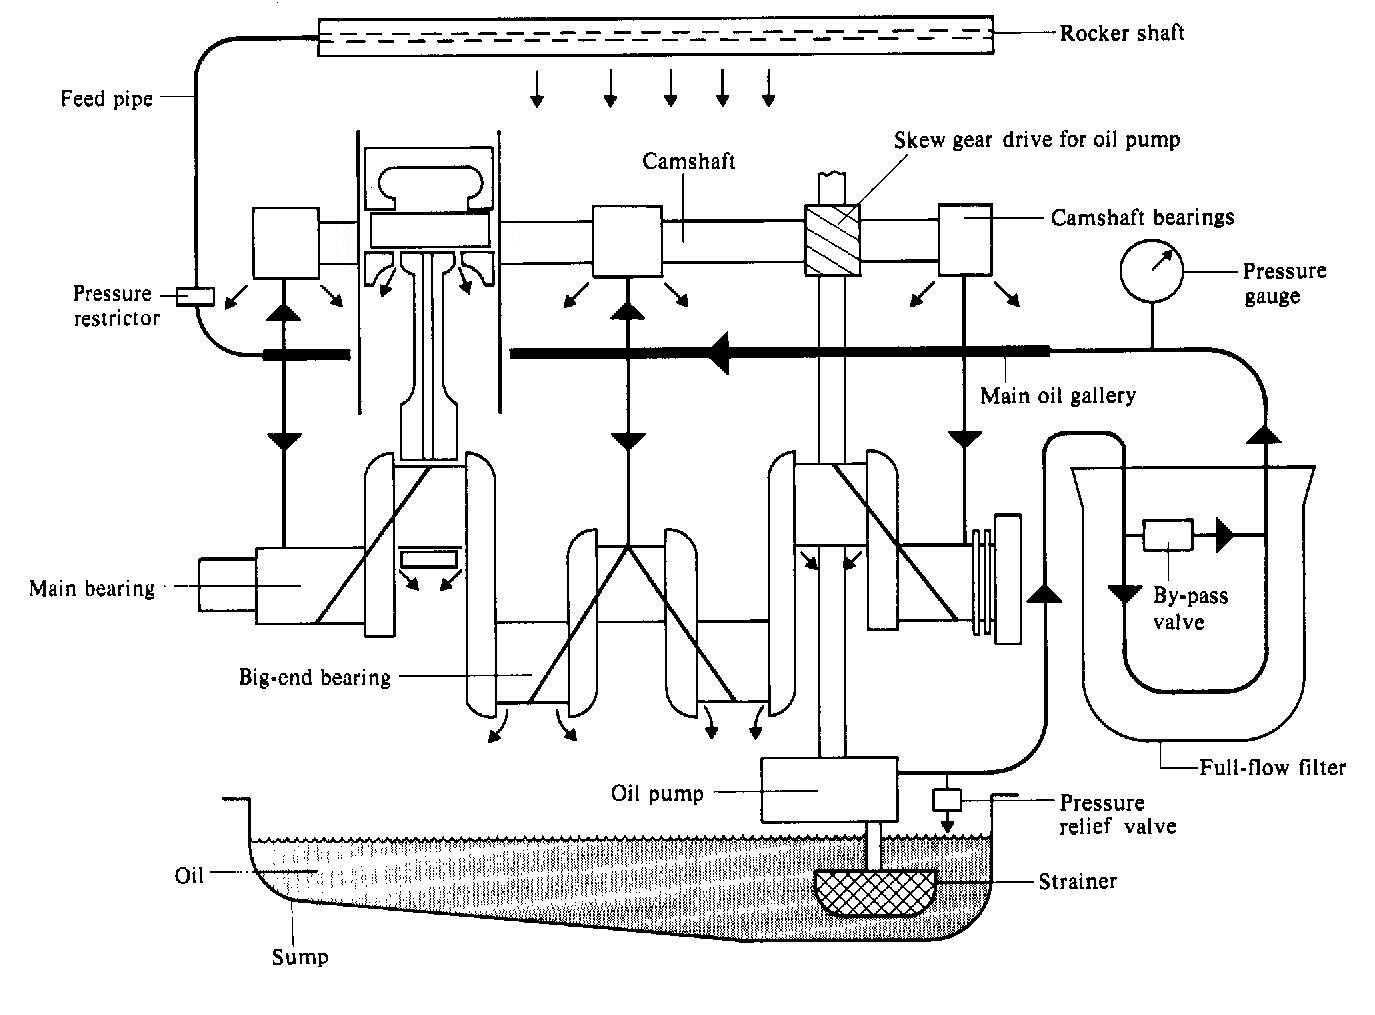 Cv Joint Boot Replacement Cost likewise The Beginners Guide To Truck Suspension besides Car Engine Diagram Labeled The Actual Wiring further 1997 Acura Rl Fuel Pump Relay Location also Shock Diagram Undercarriage. on jeep cherokee undercarriage diagram